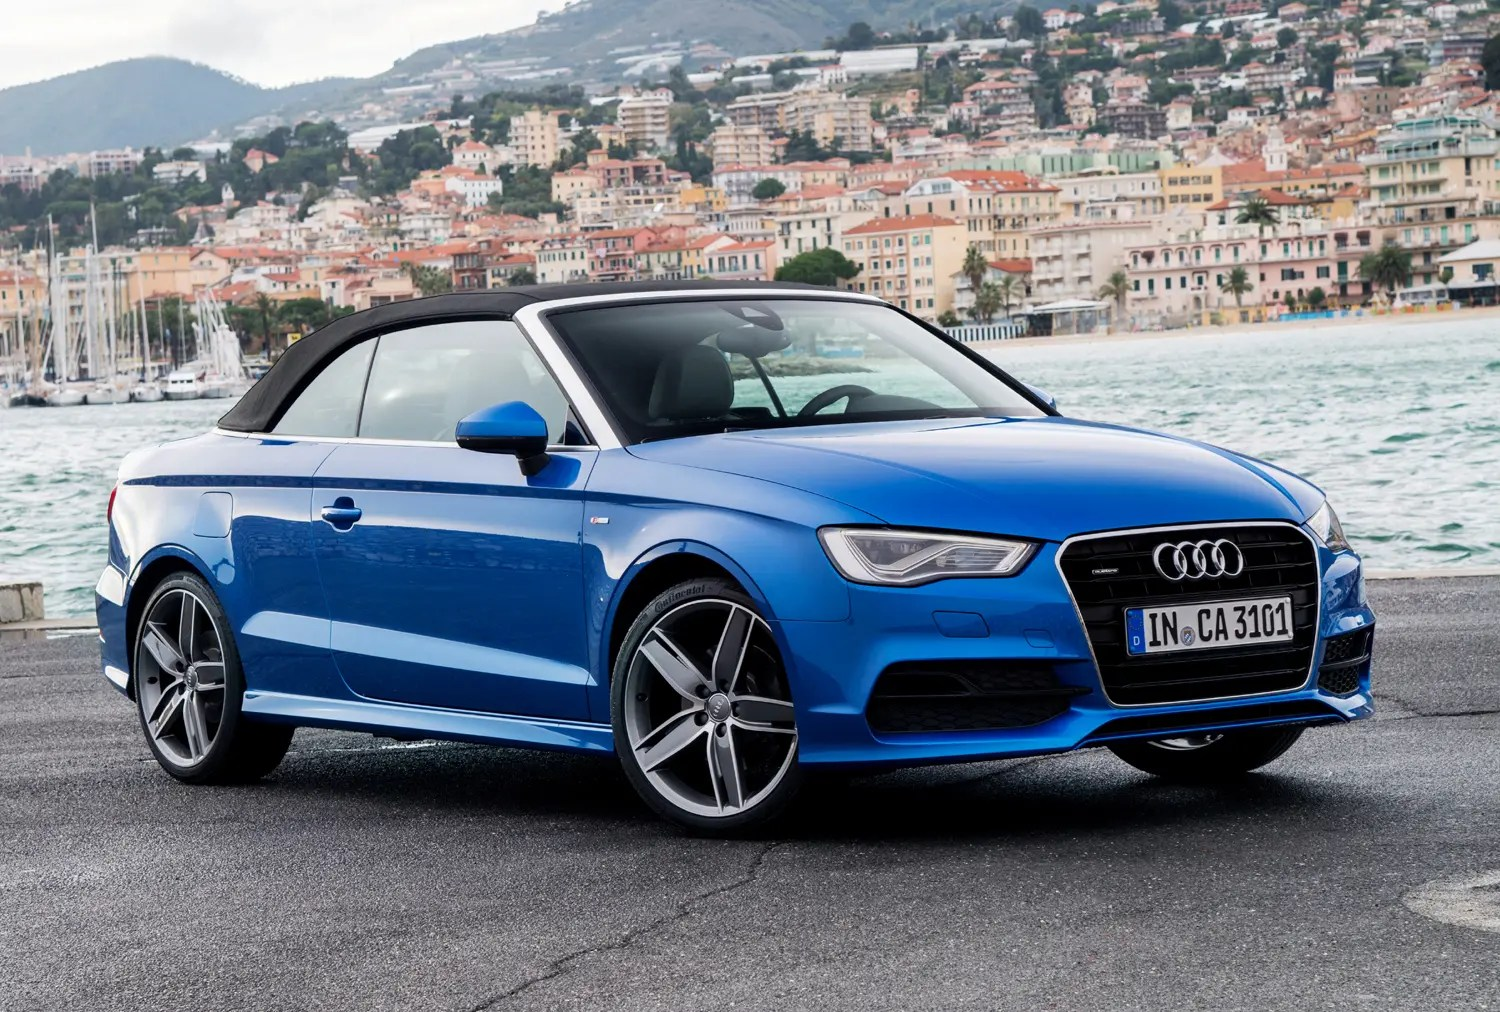 A3 Cabriolet Review Audi A3 Cabriolet Review 2014 Parkers